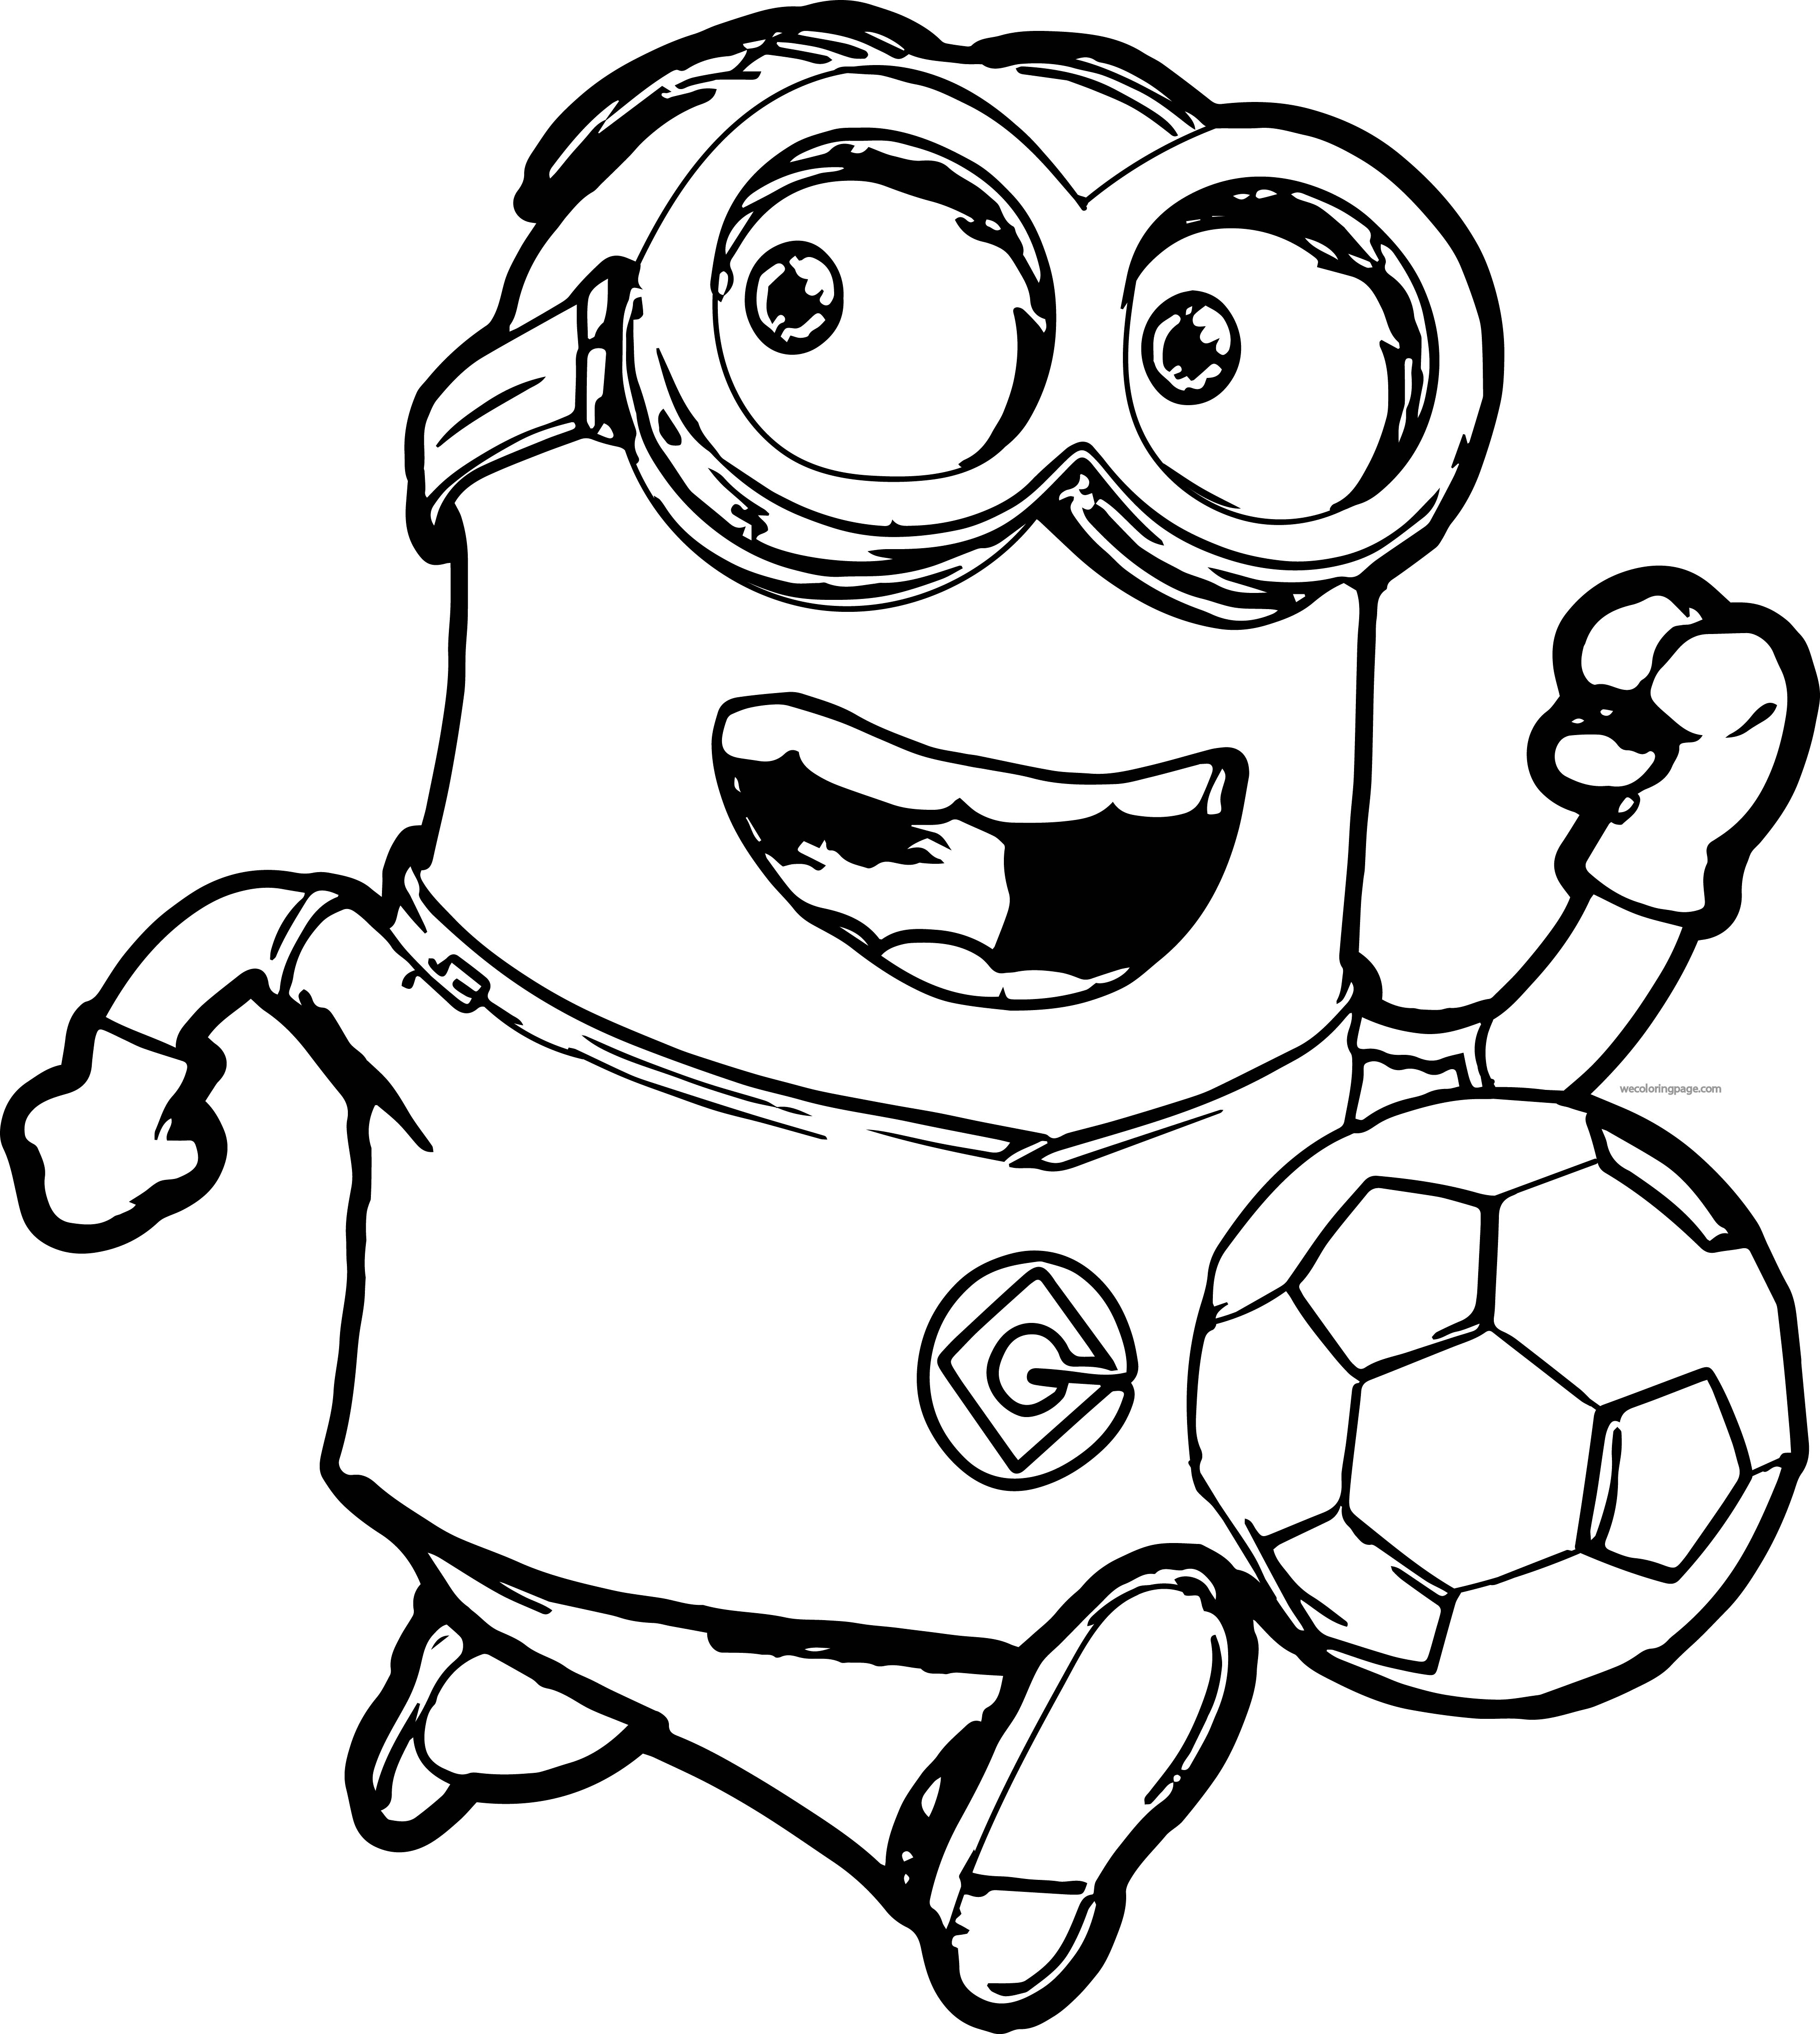 minion coloring pictures minion coloring pages best coloring pages for kids pictures coloring minion